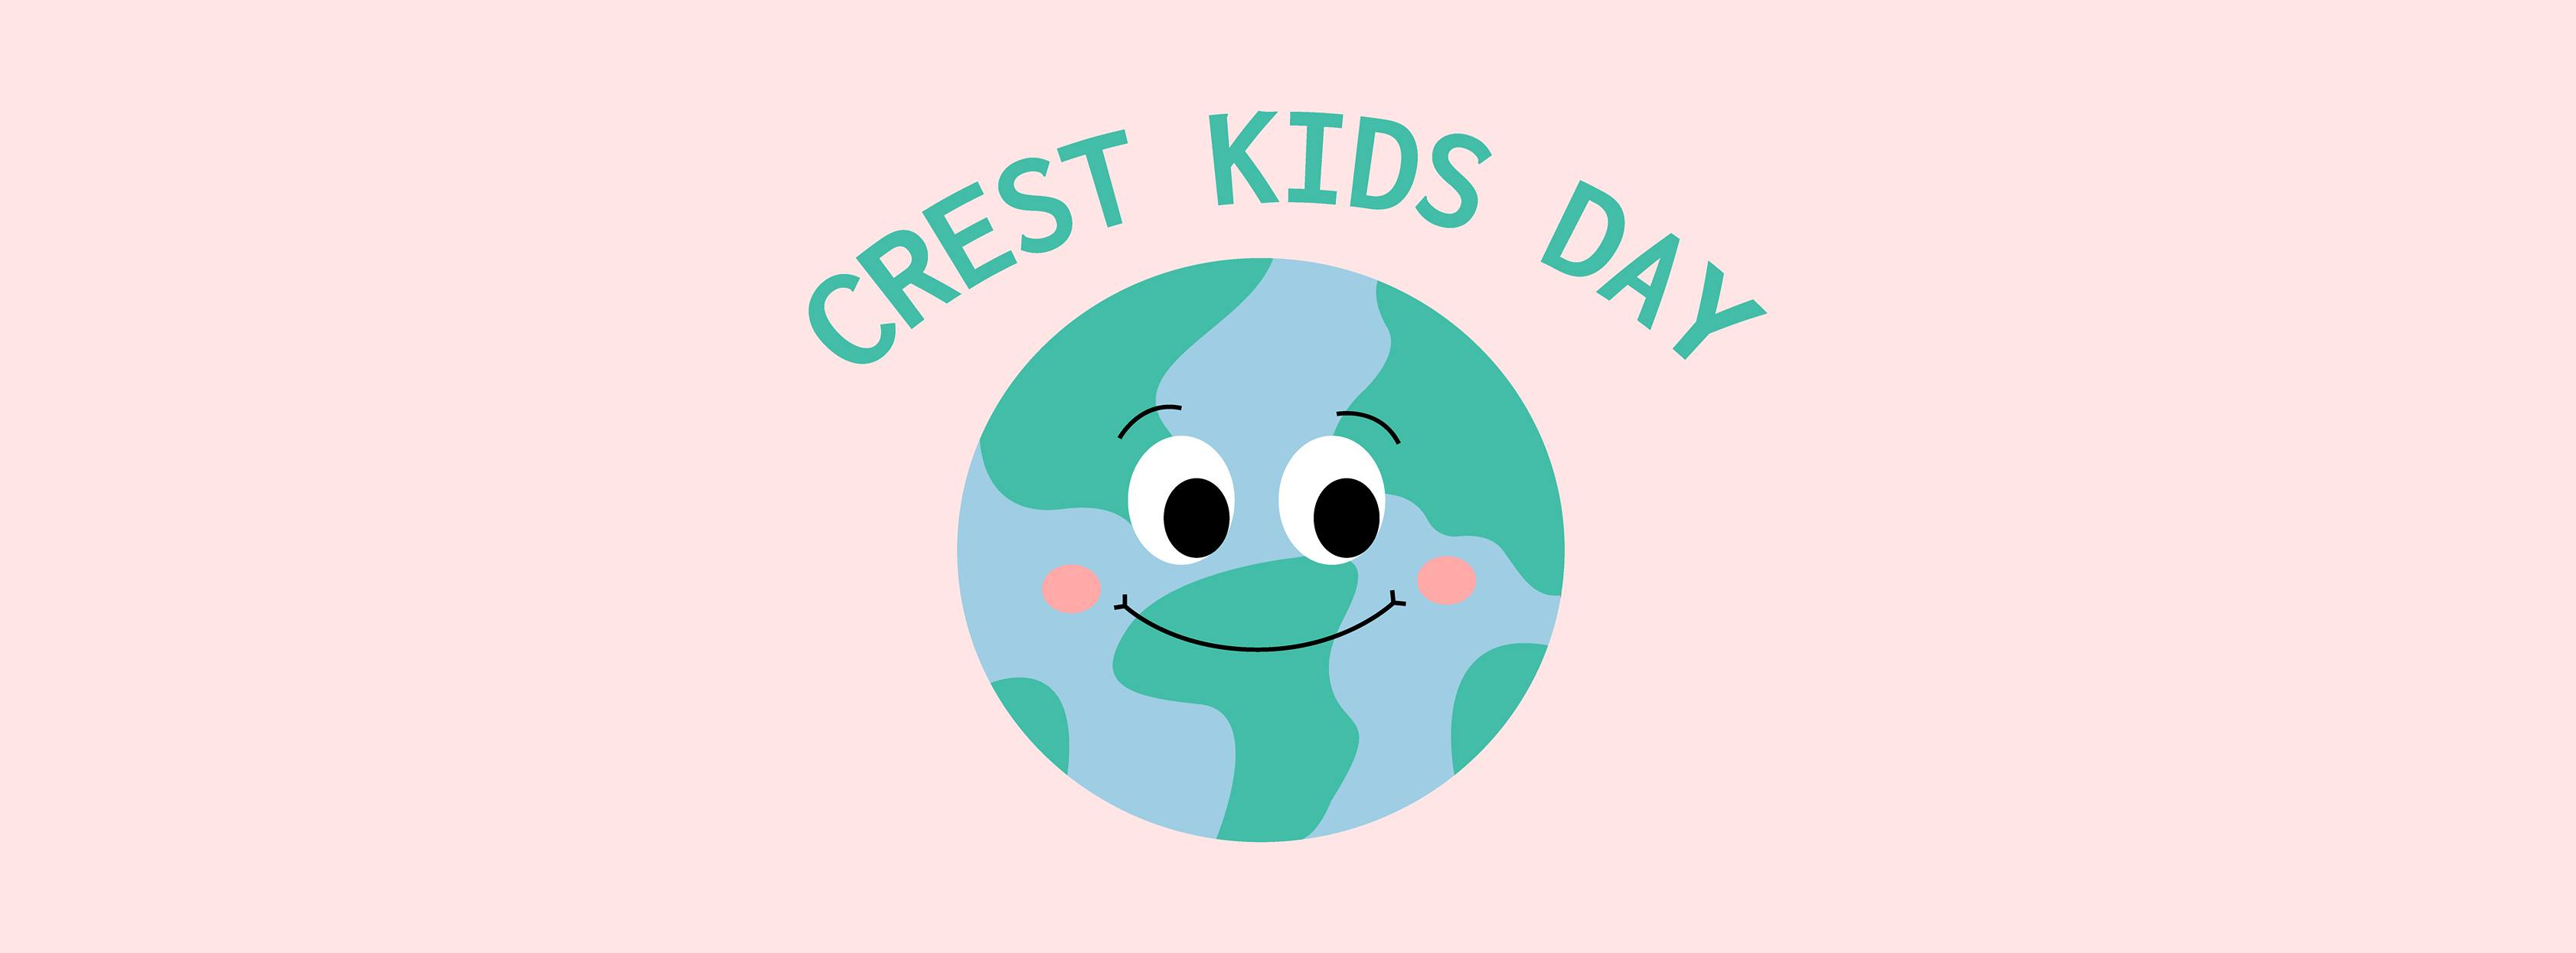 Crest Kids Day logo